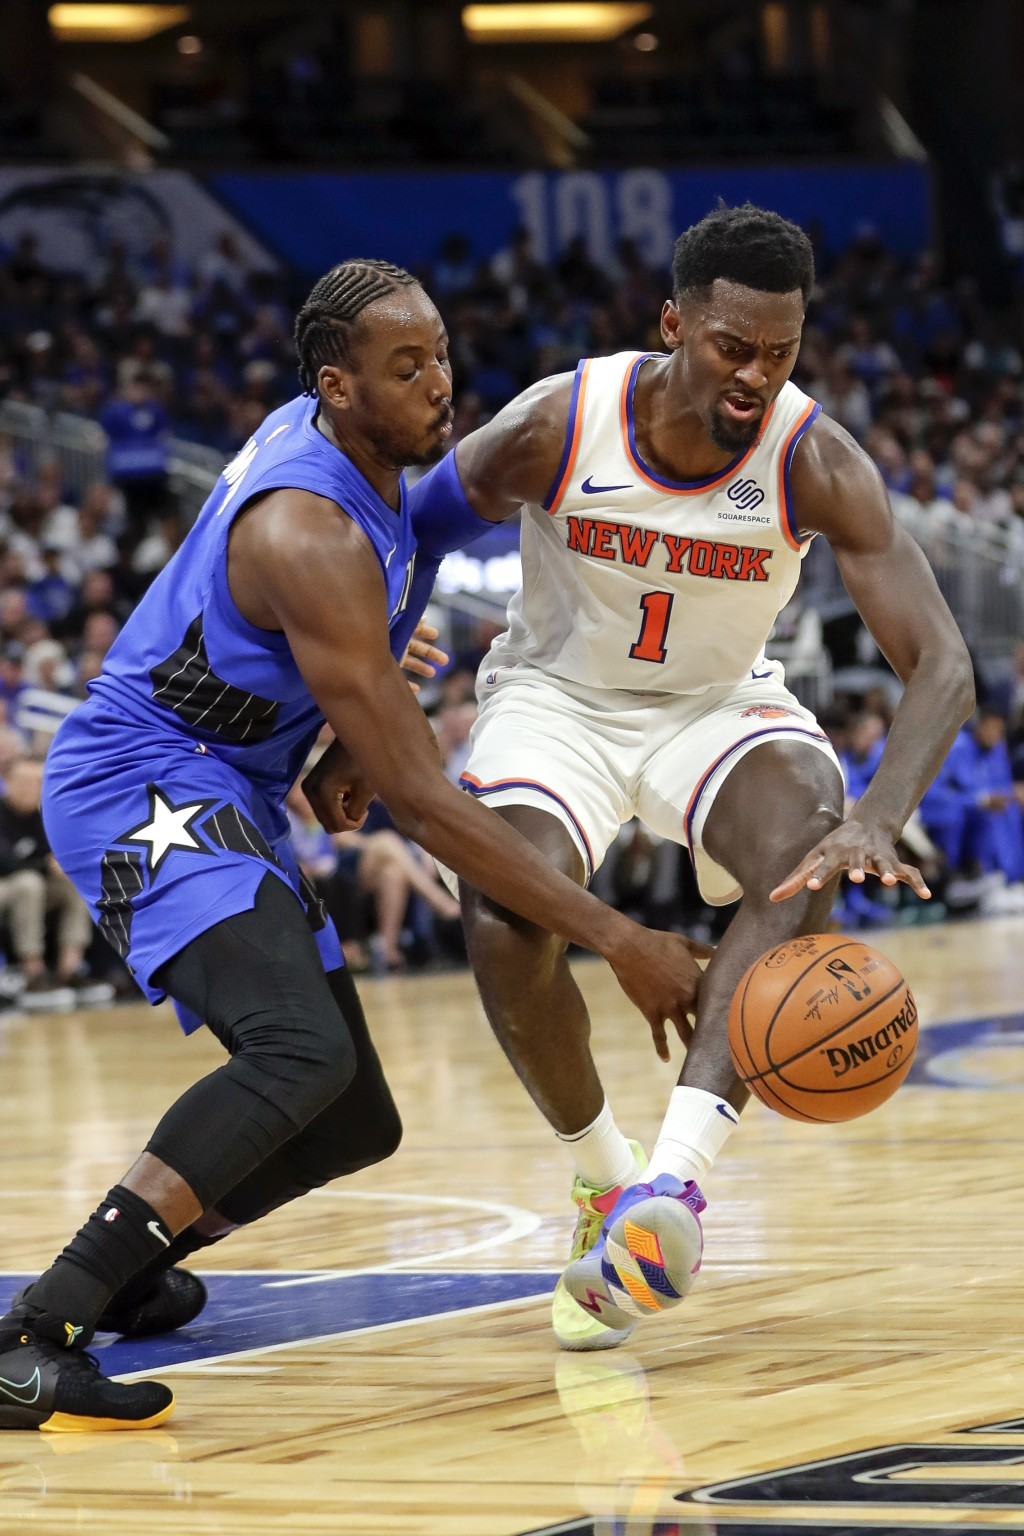 New York Knicks' Bobby Portis (1) loses his grip on the ball as he is guarded by Orlando Magic's Al-Farouq Aminu, left, during the first half of an NB...